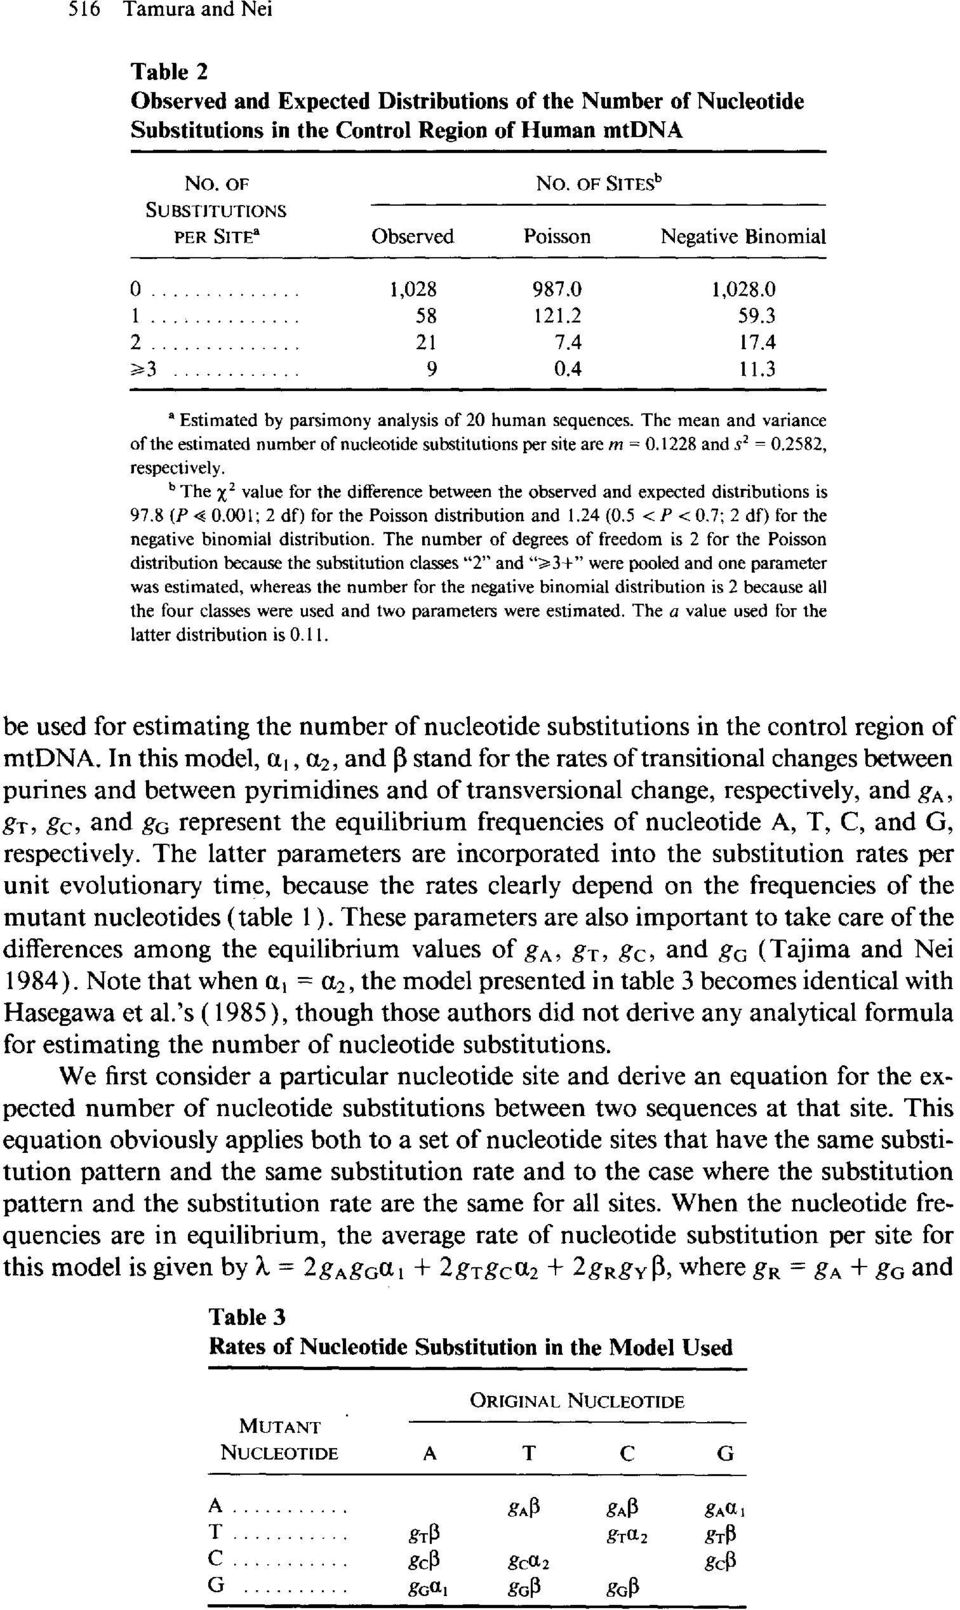 3 a Estimated by parsimony analysis of 20 human sequences. The mean and variance of the estimated number of nucleotide substitutions per site are m = 0.1228 and s2 = 0.2582, respectively.